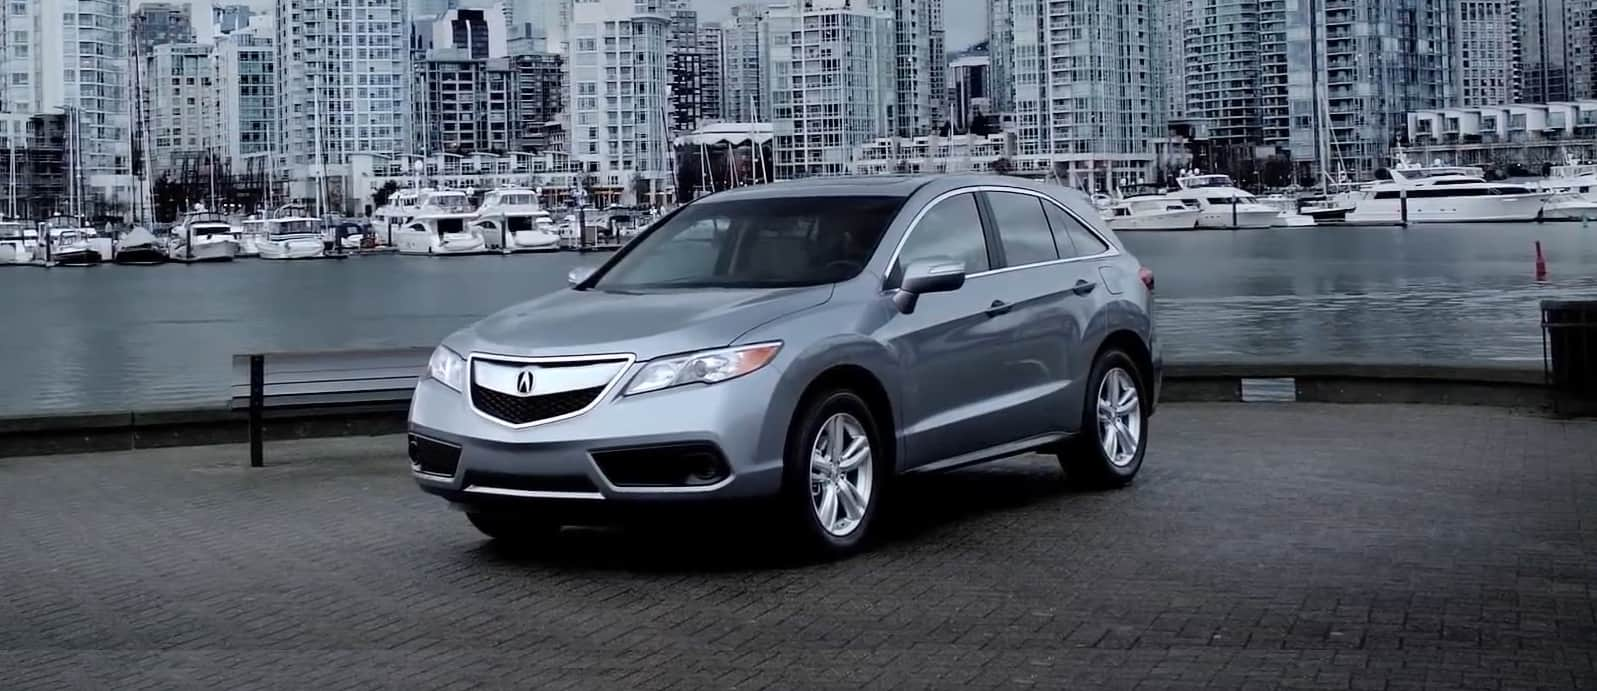 2016 Acura Rdx Styling Review | 2017 - 2018 Best Car Reviews